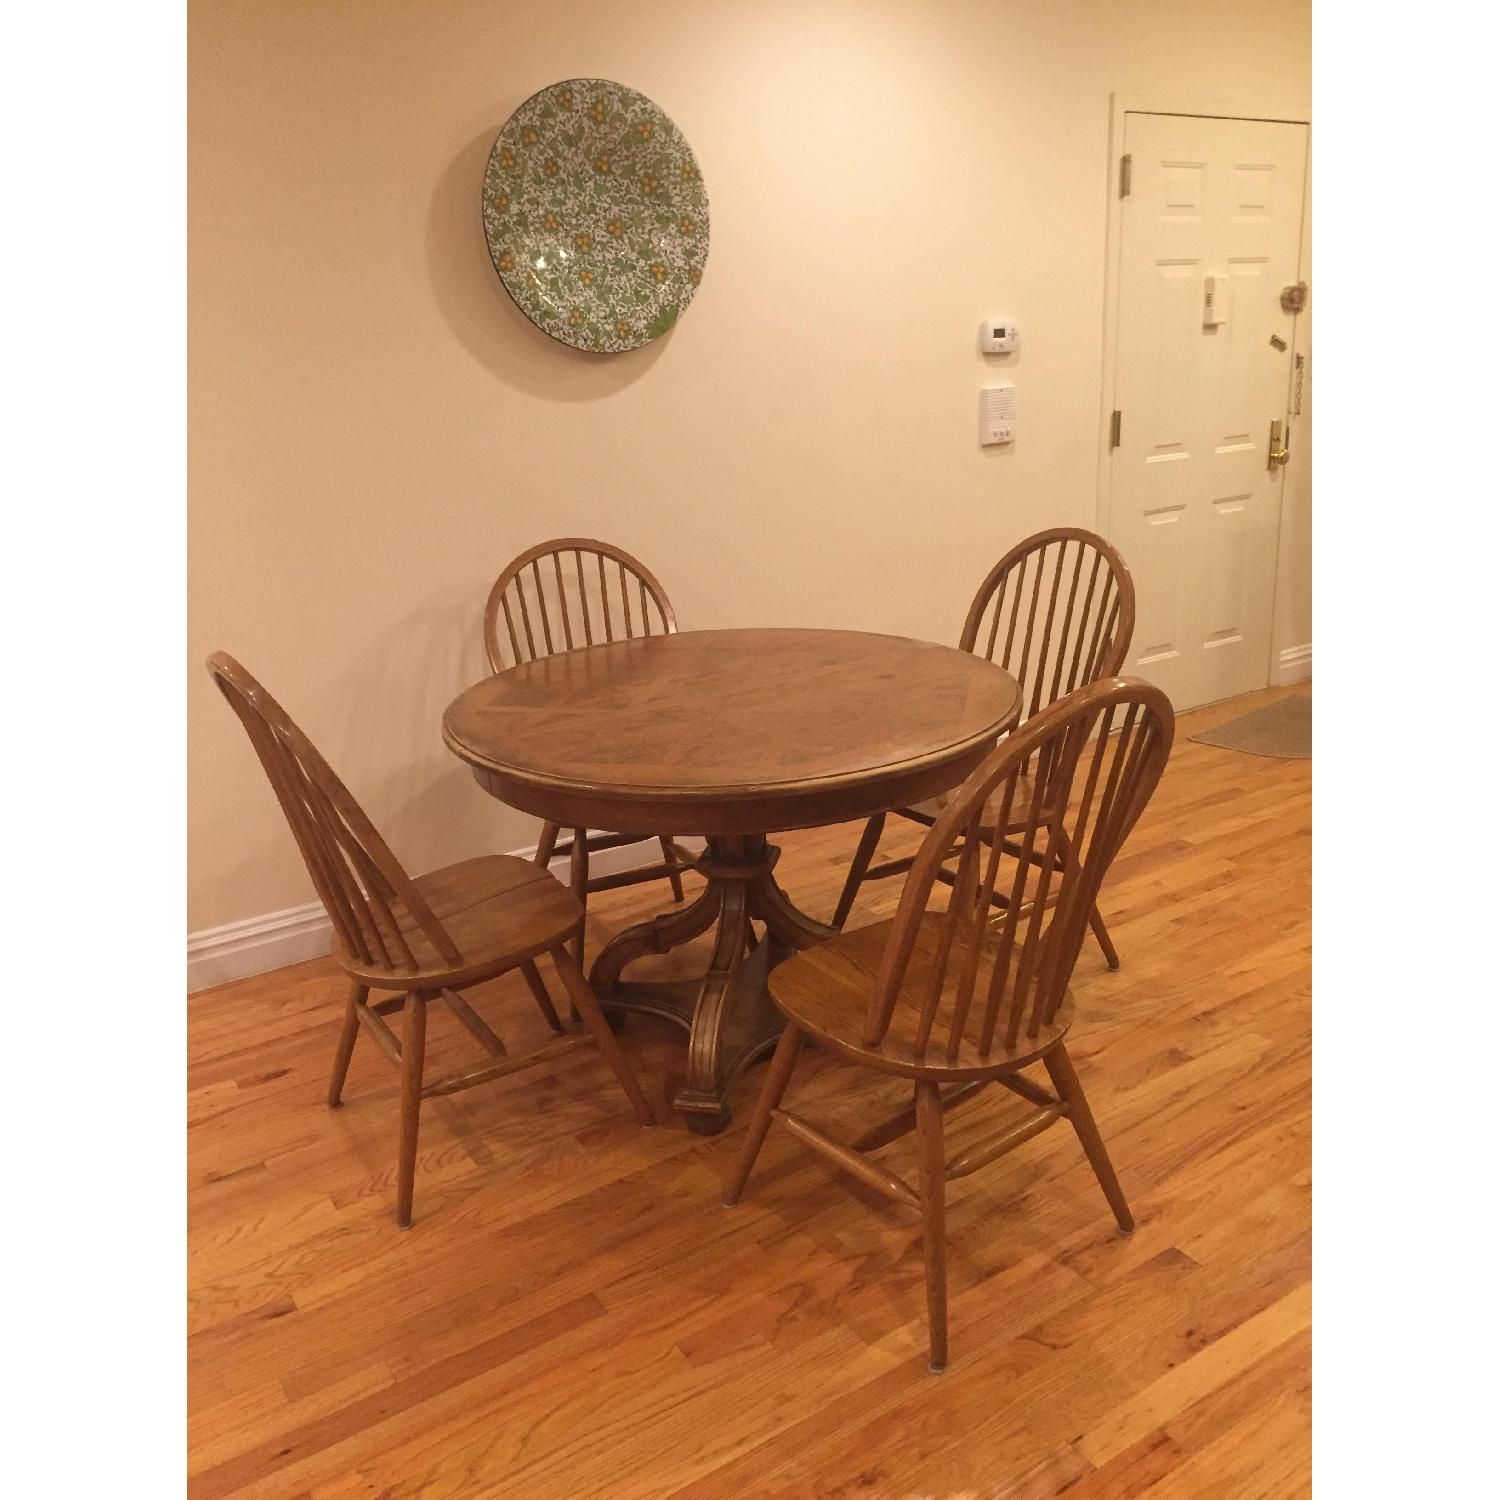 Dining Table w/ 4 Chairs - image-1